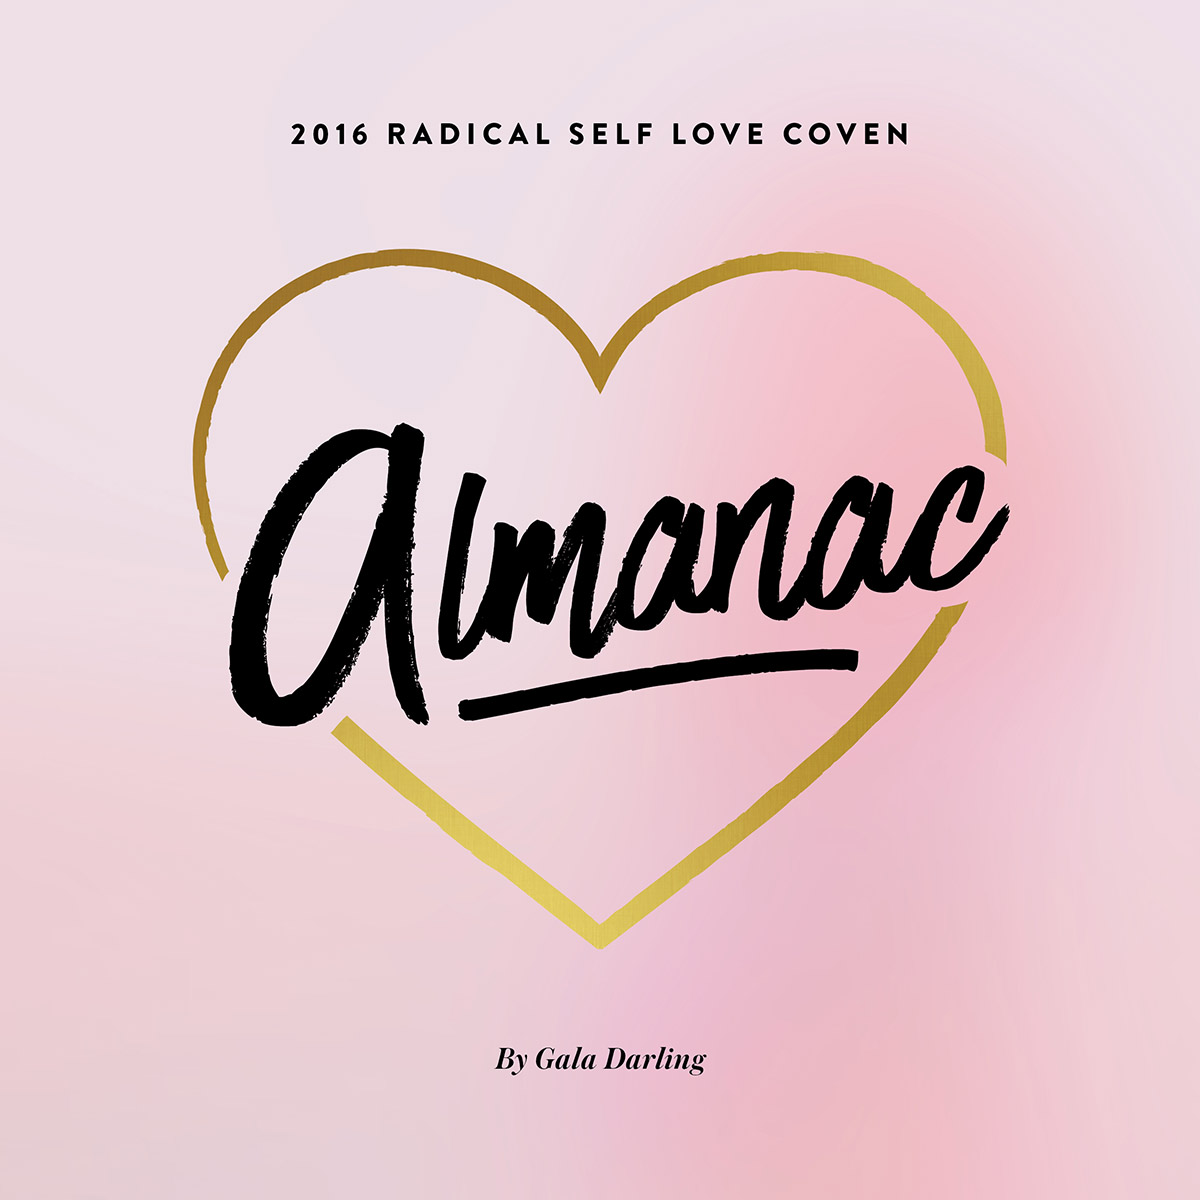 Branch | Gala Darling Radical Self Love Coven Almanac